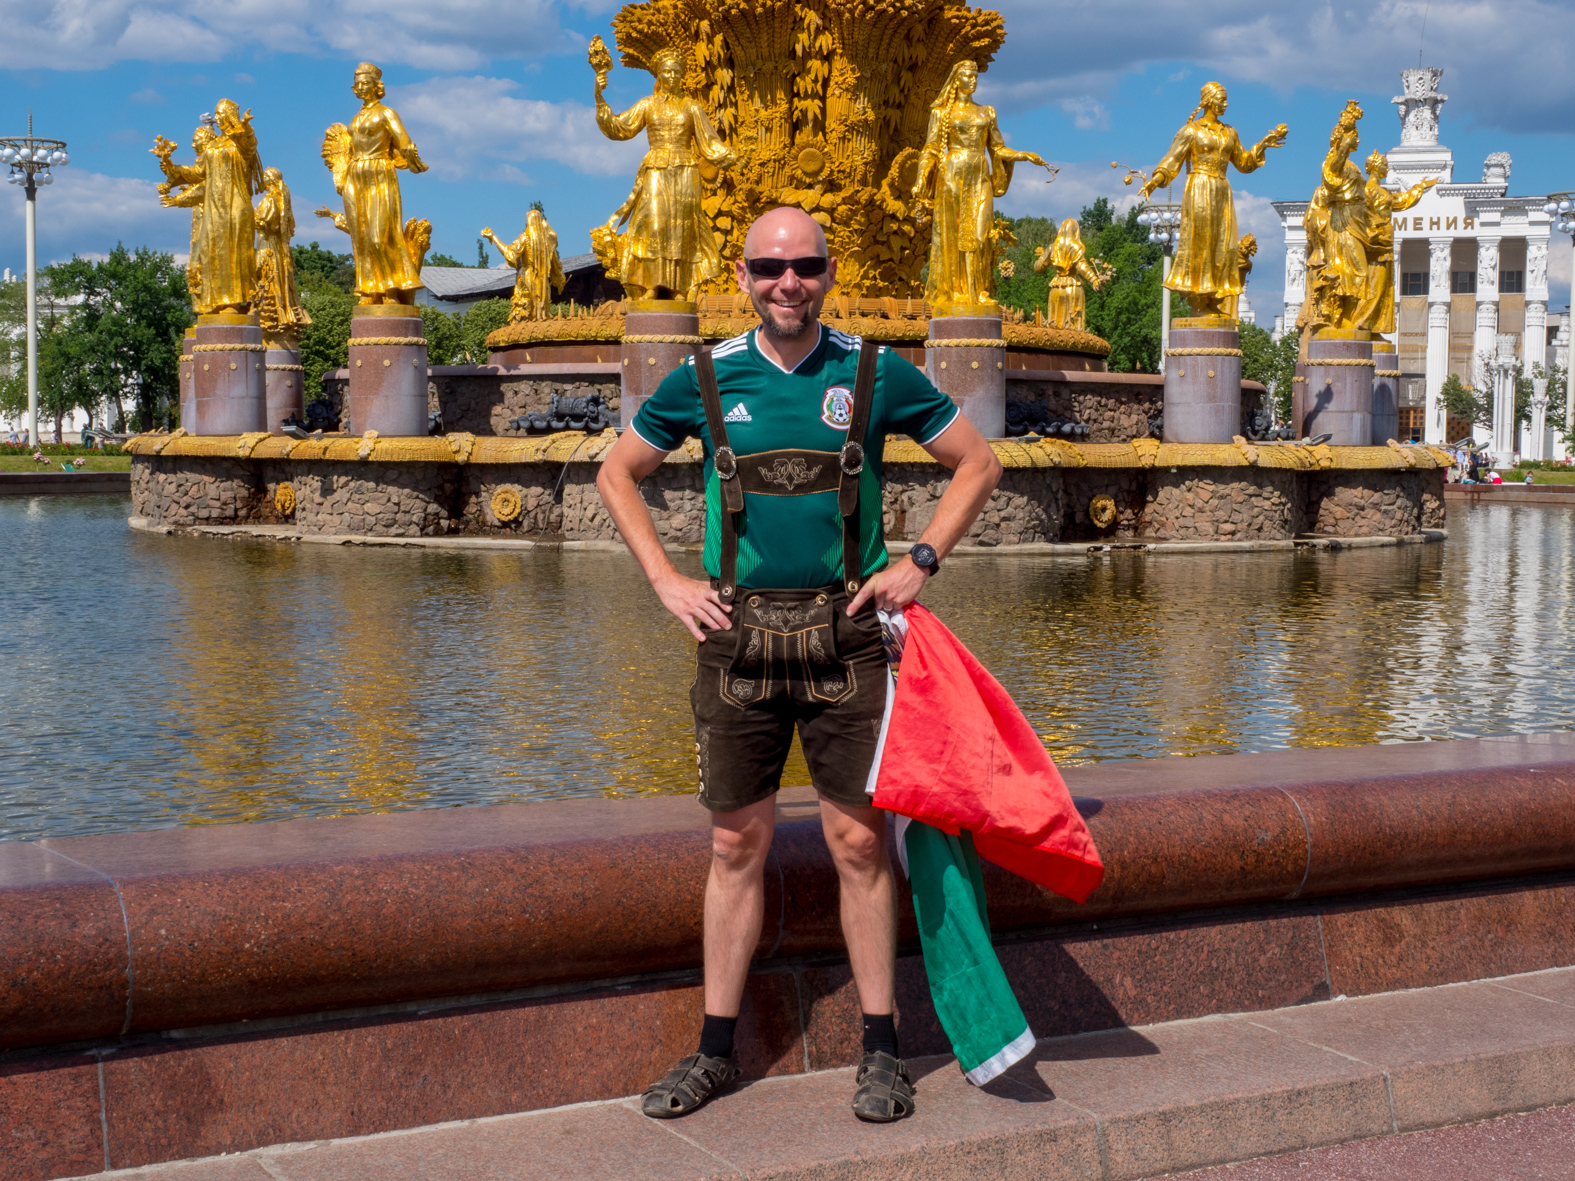 A Mexican football fan wearing traditional German Lederhosen poses for a photograph  by the Friendship of Nations fountain. The 21st FIFA World Cup football tournament took place in Russia in 2018. It was the first World Cup to be held in Eastern Europe and the eleventh time that it has been held in Europe. For the first time the tournament took place on two continents – Europe and Asia. All but two of the stadium venues were in European Russia.